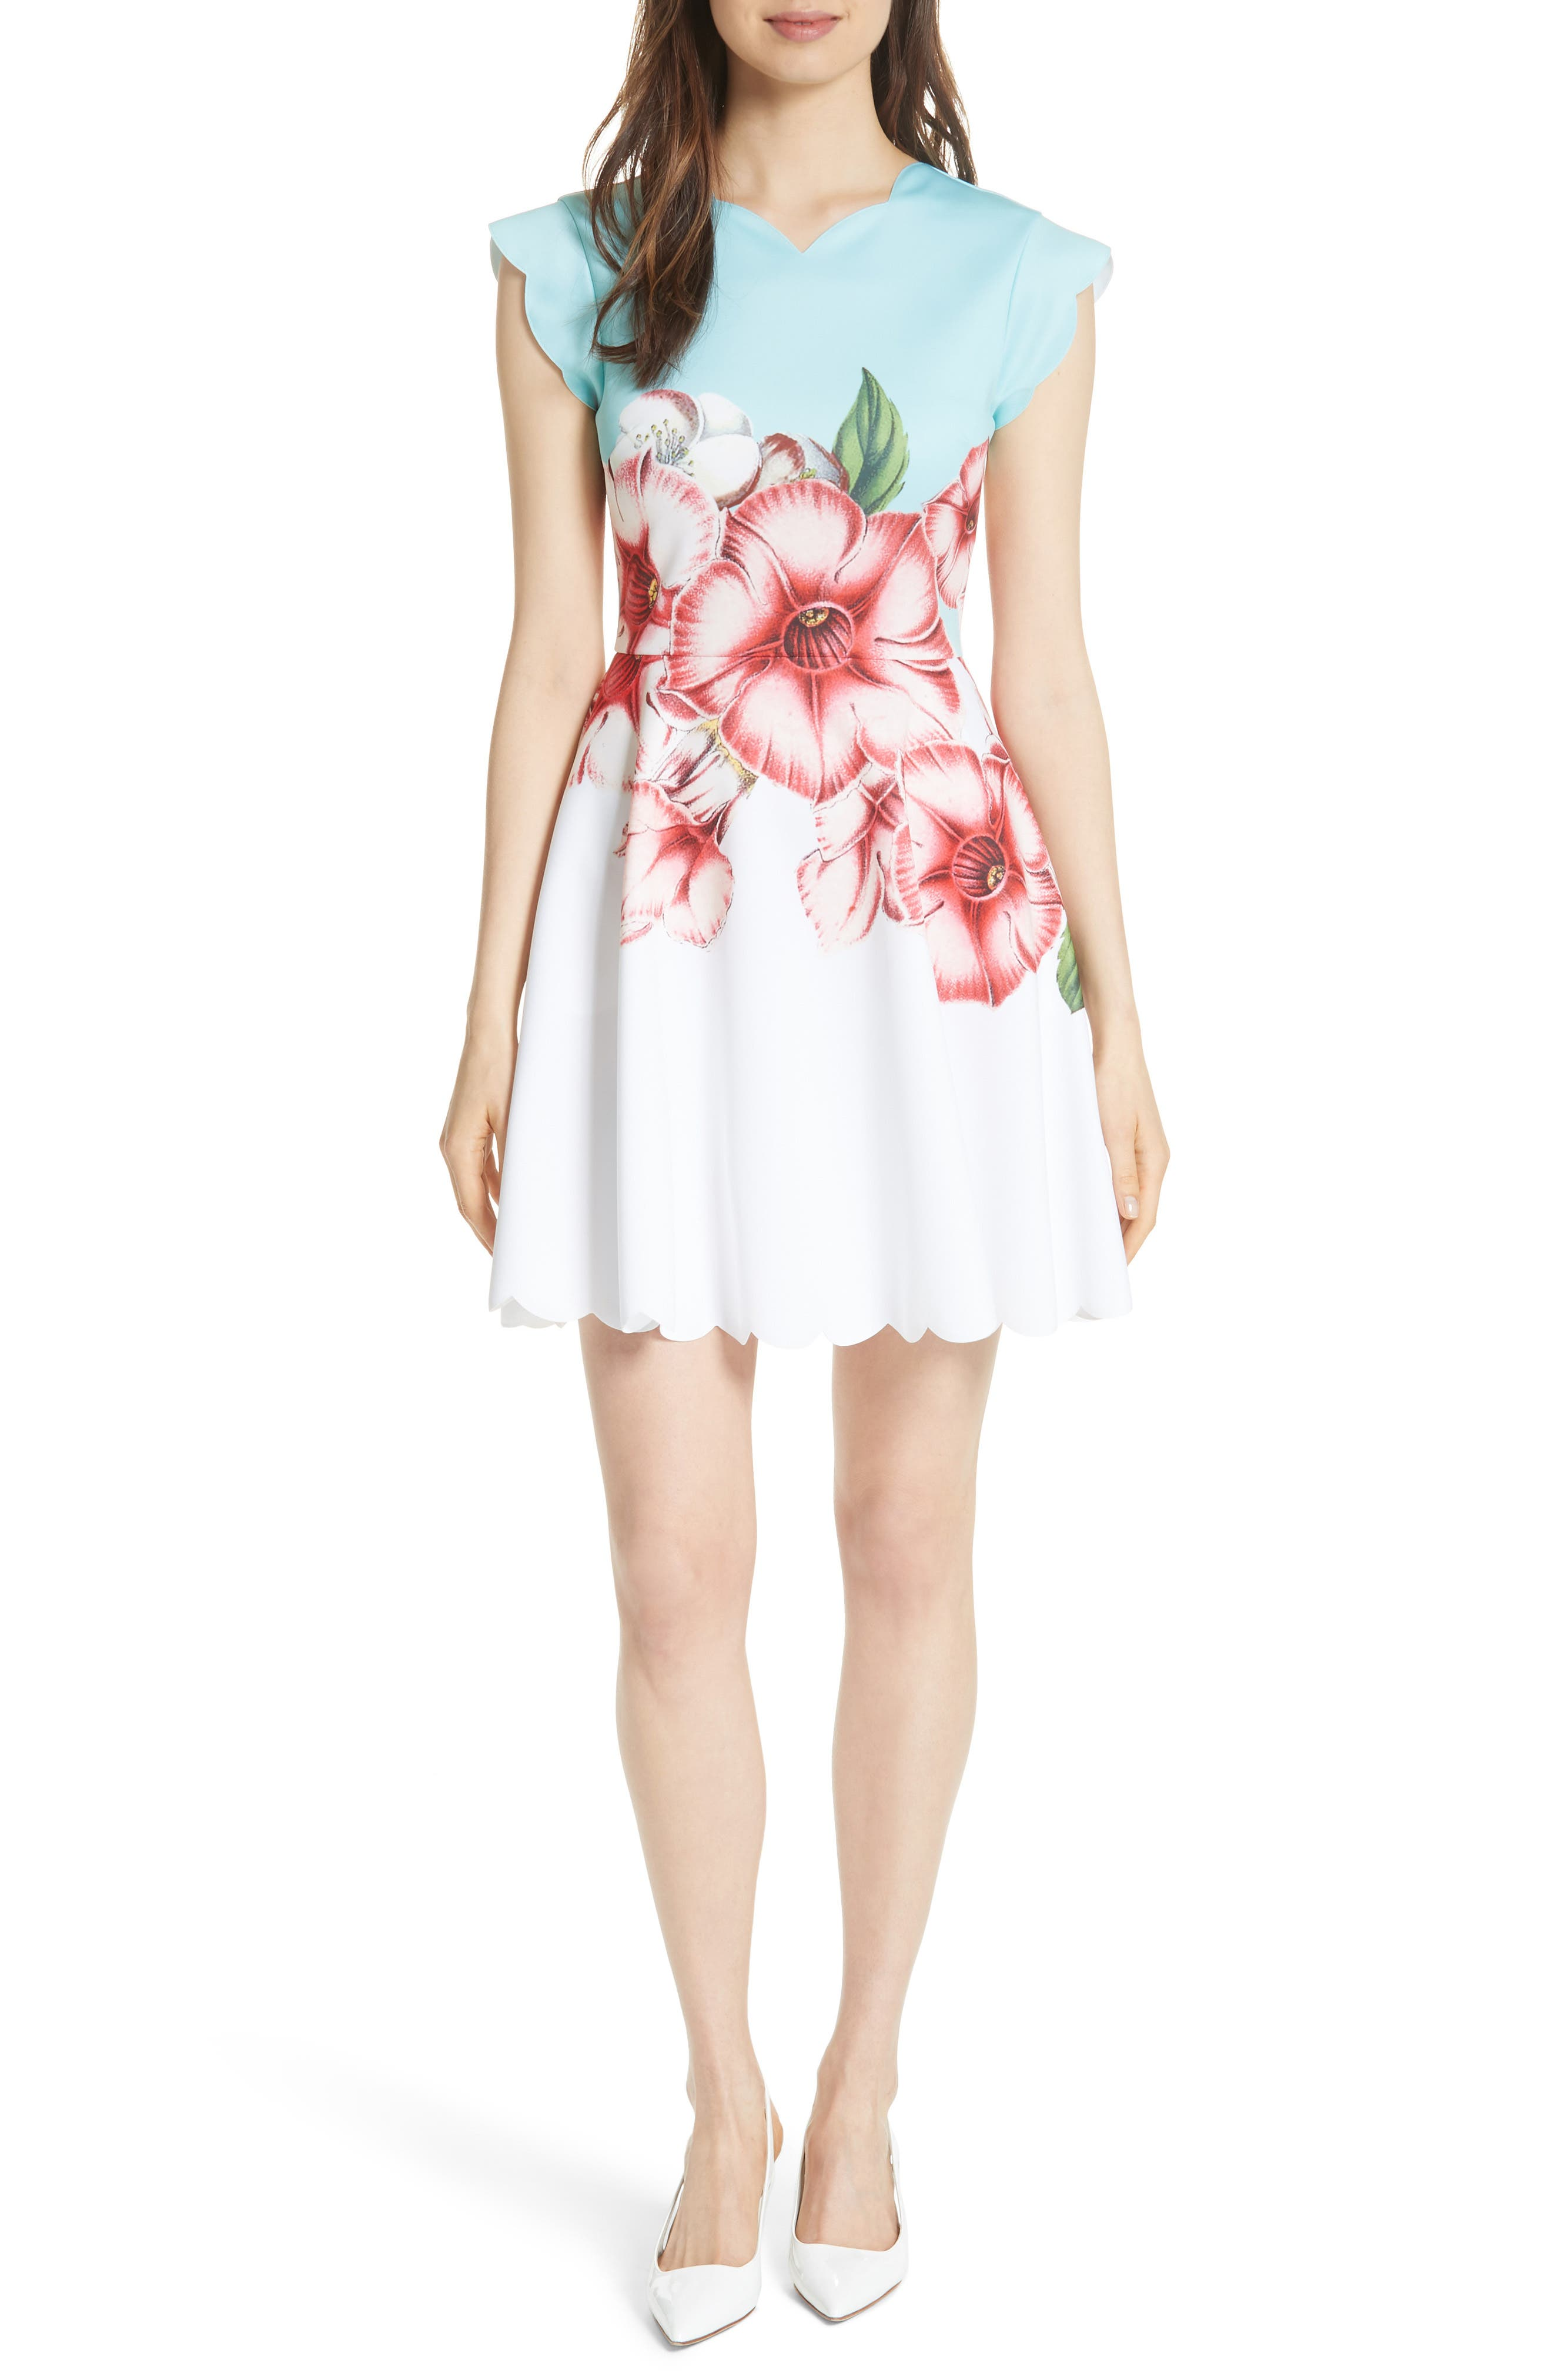 Maevea Nectar Skater Dress,                         Main,                         color, Pale Green